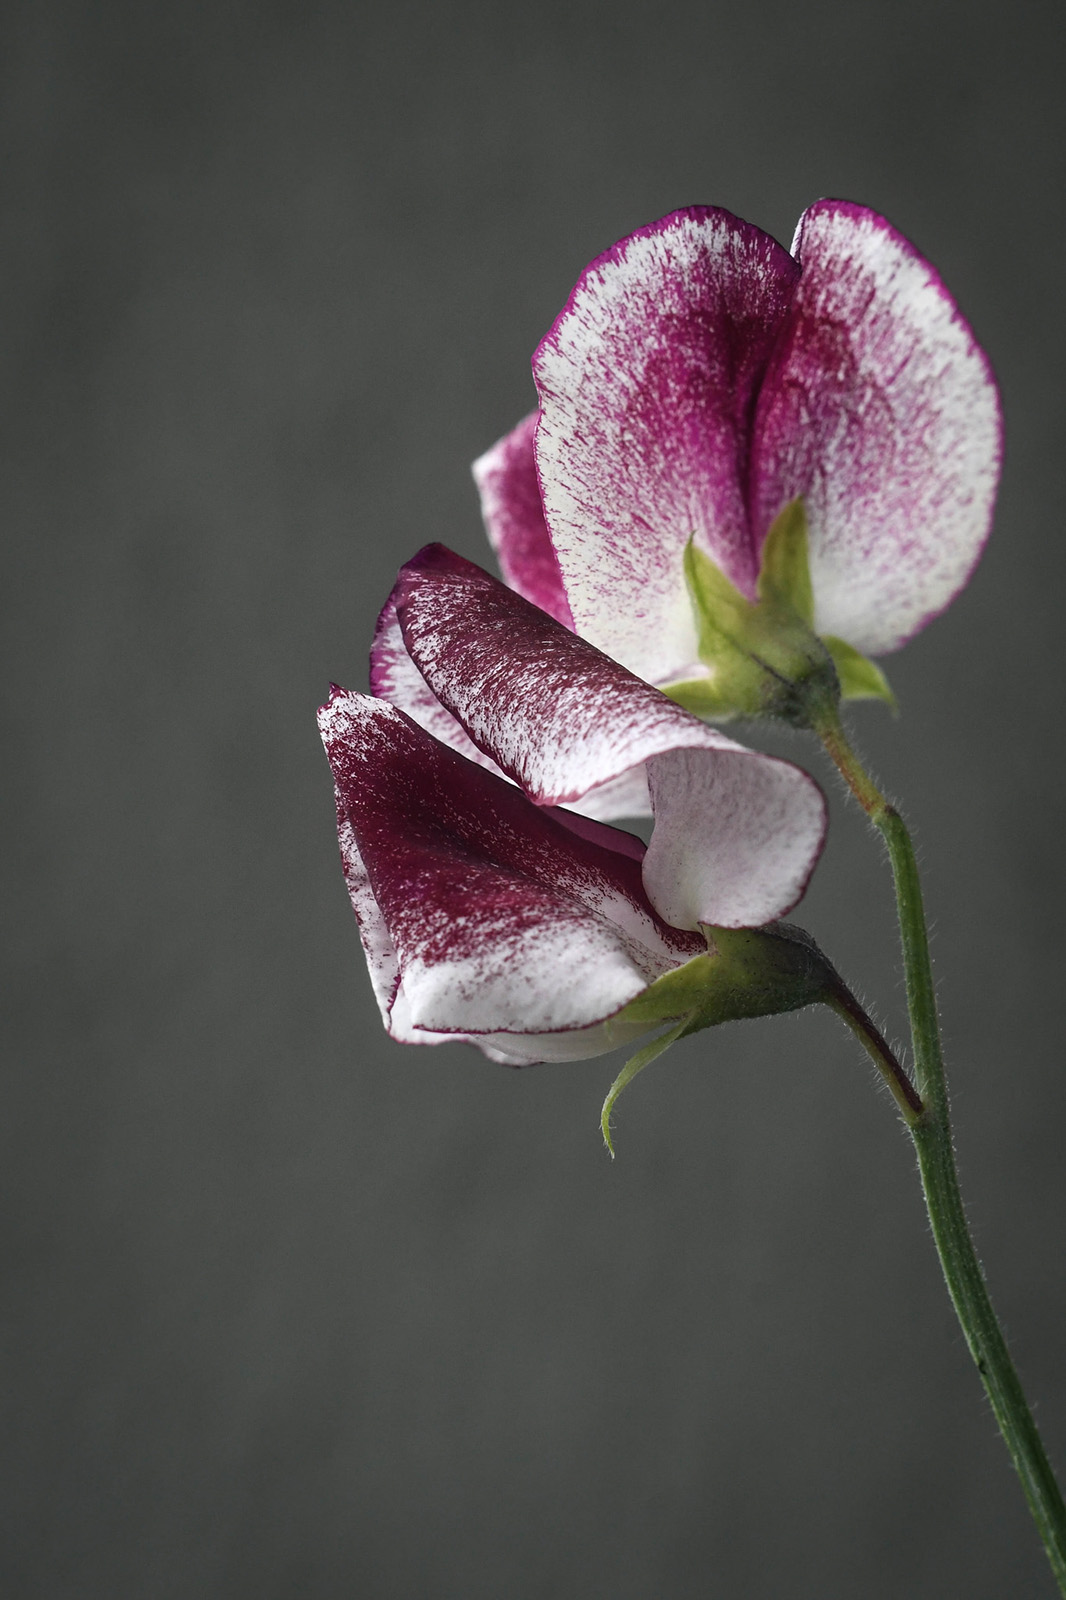 Flower of <i>Lathyrus odoratus</i> 'Wiltshire Ripple'